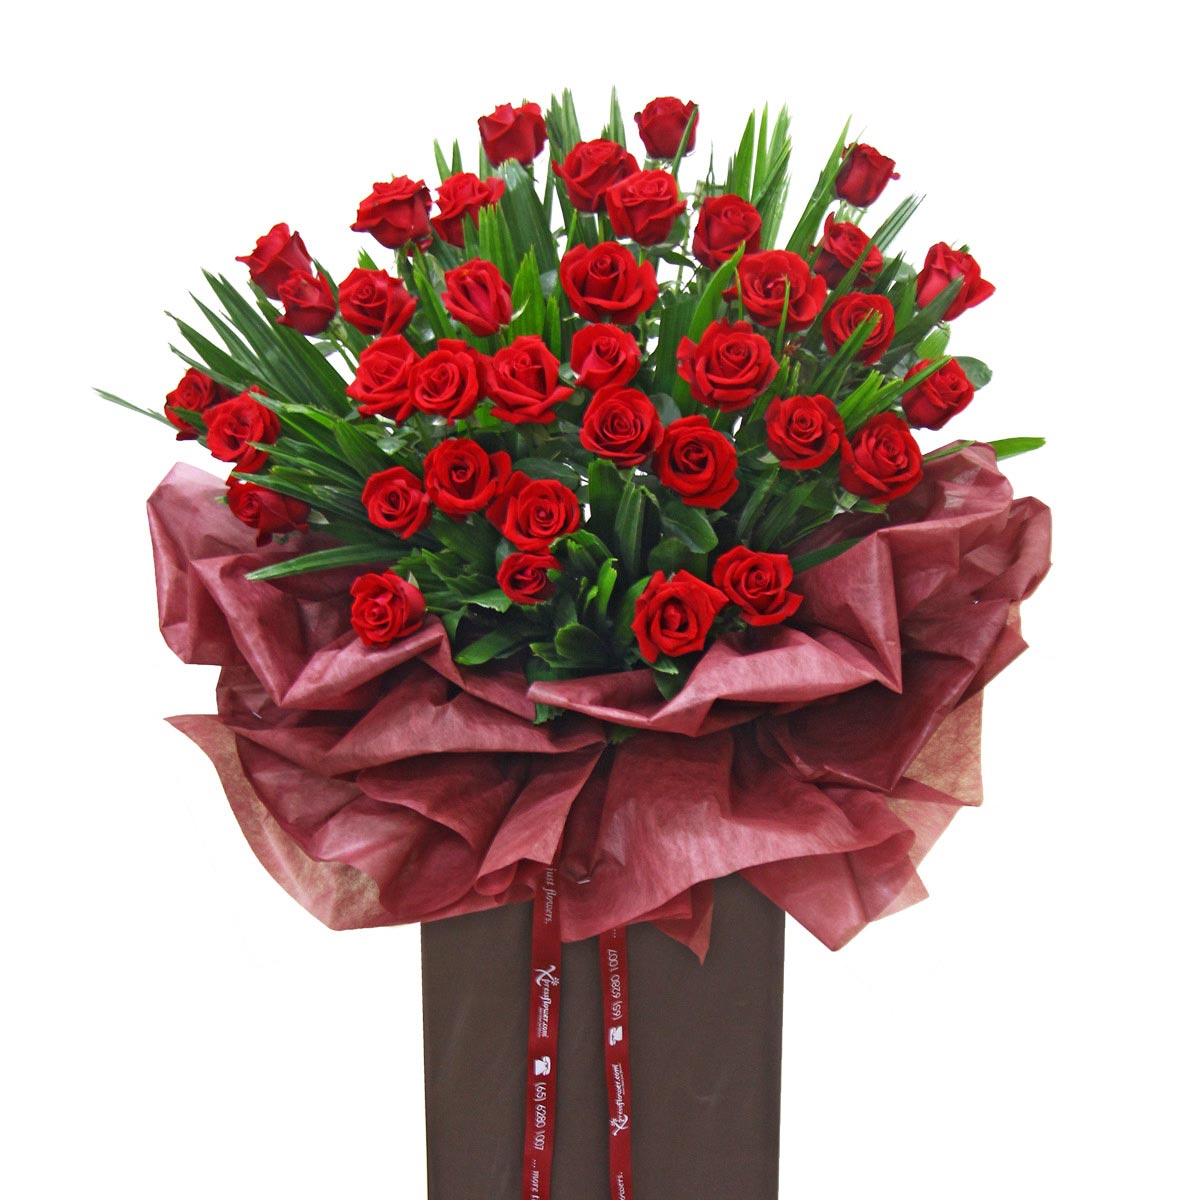 CS1434 red roses congratulatory flower stand